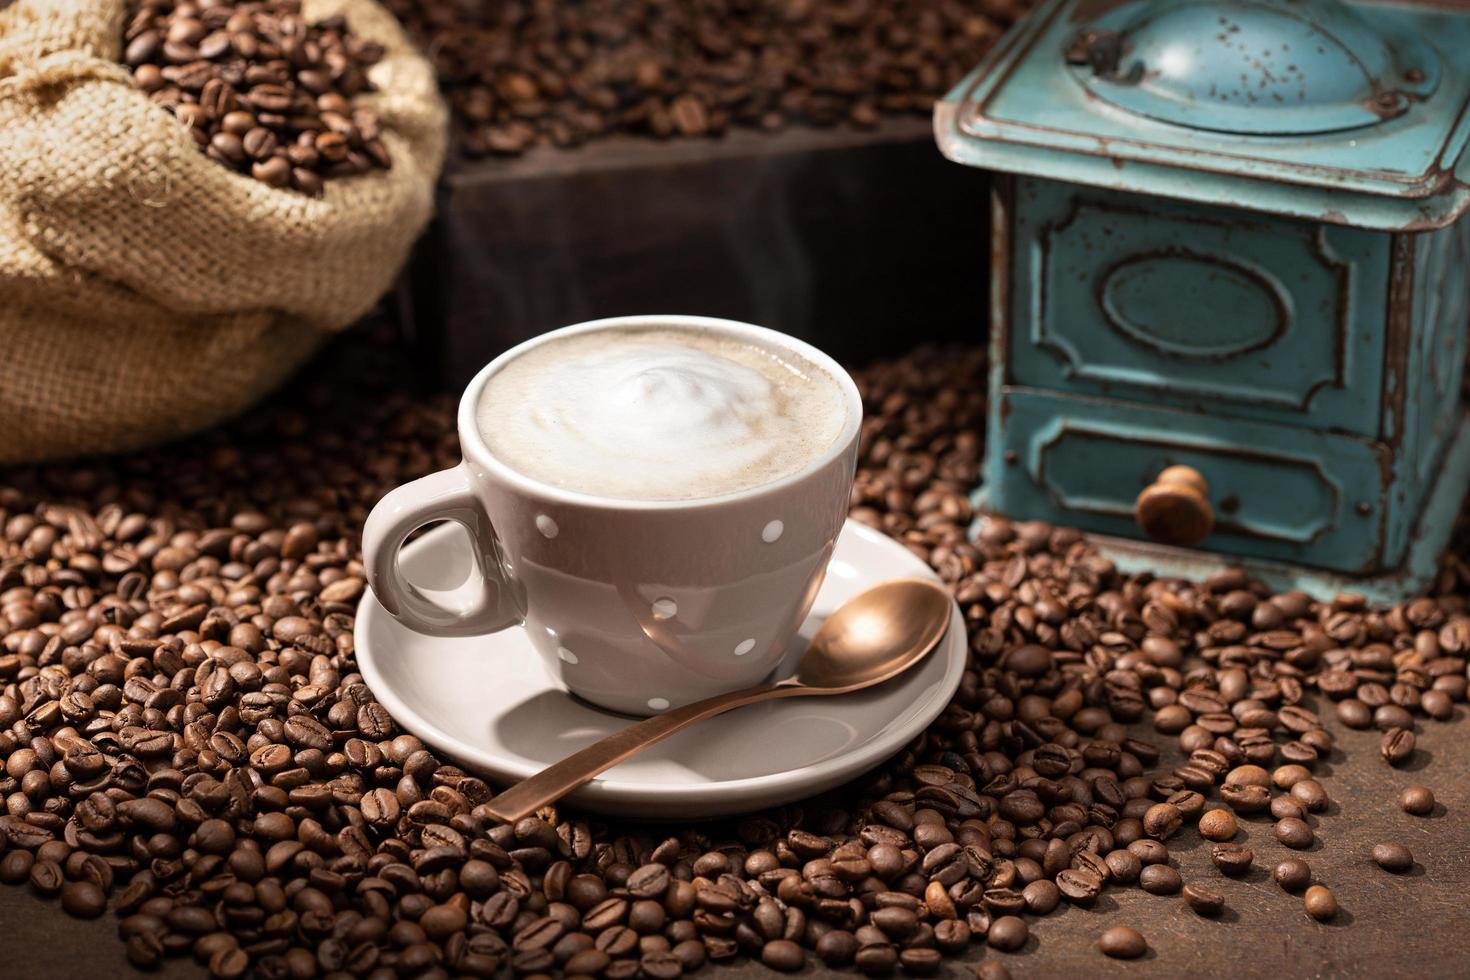 Coffee cup cappuccino or latte photo